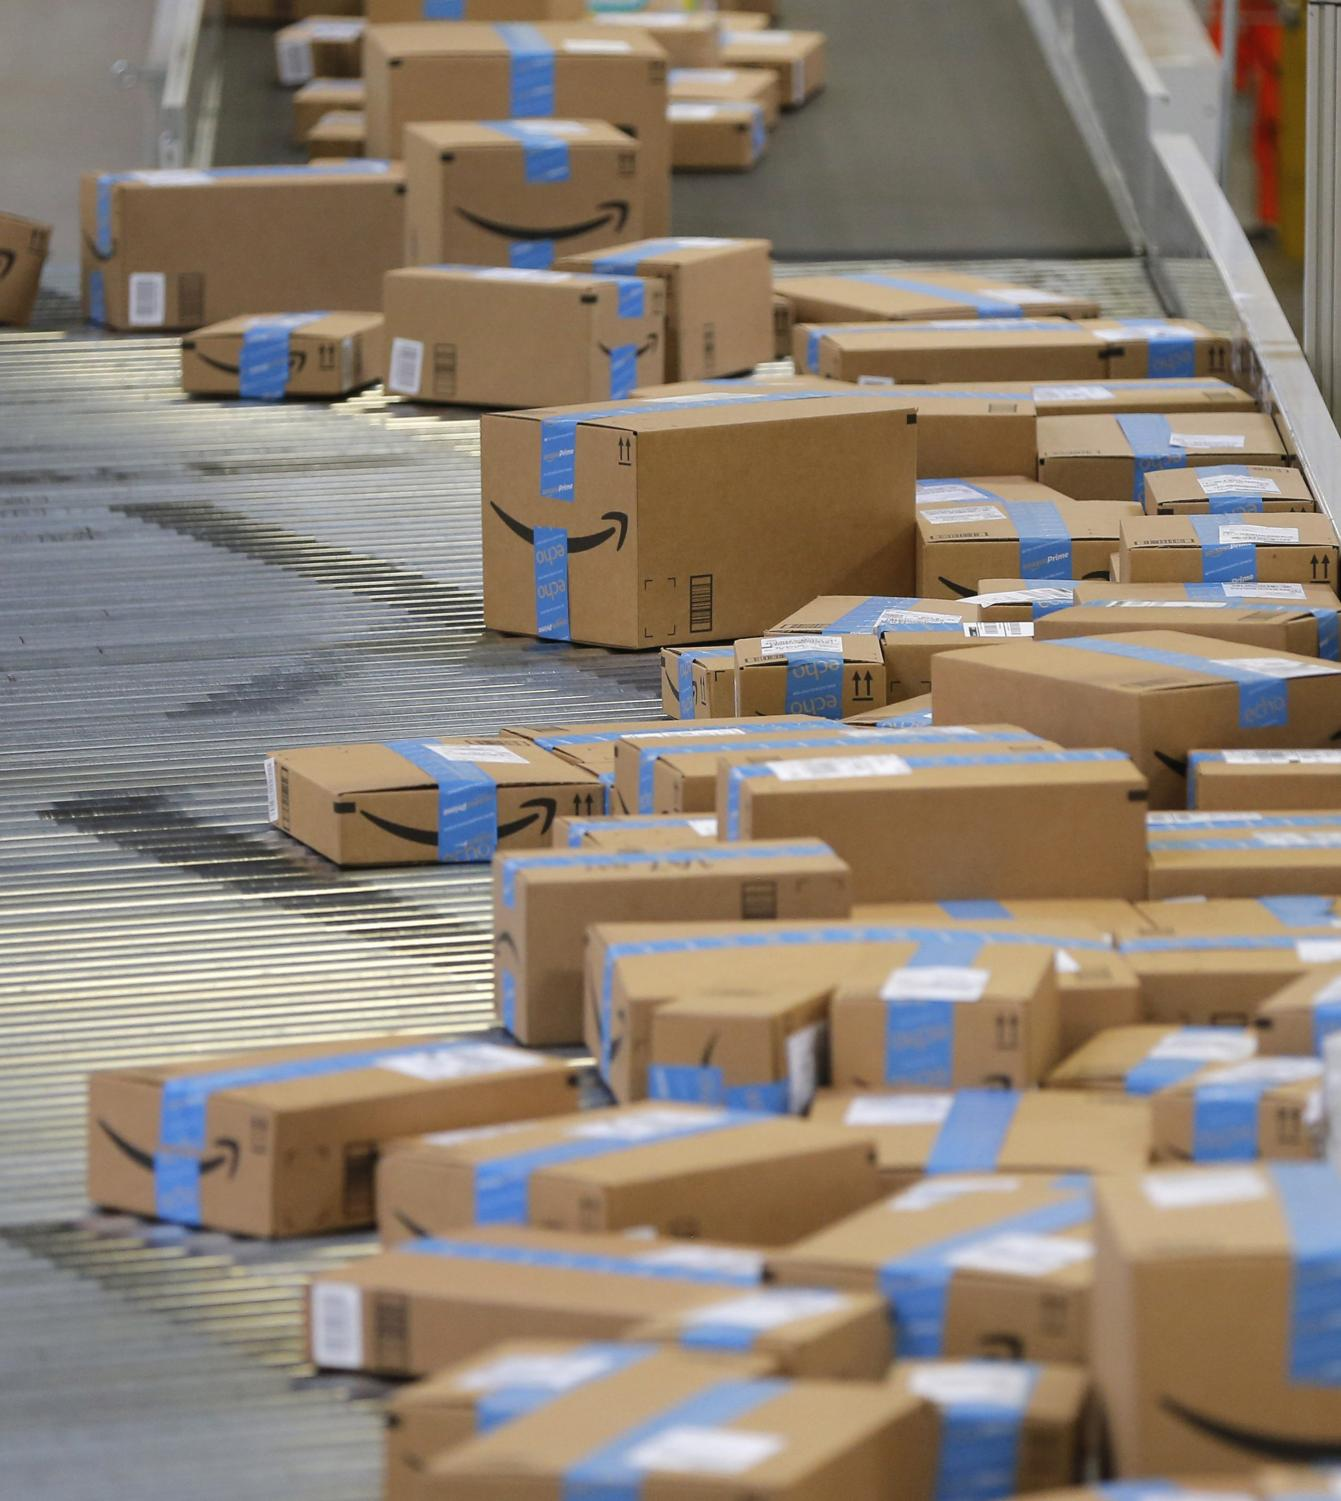 Packed and sealed boxes move toward the trucks as employees fill orders at Amazon Fulfillment Center in Haslet, Texas on Monday, Nov. 28, 2017.